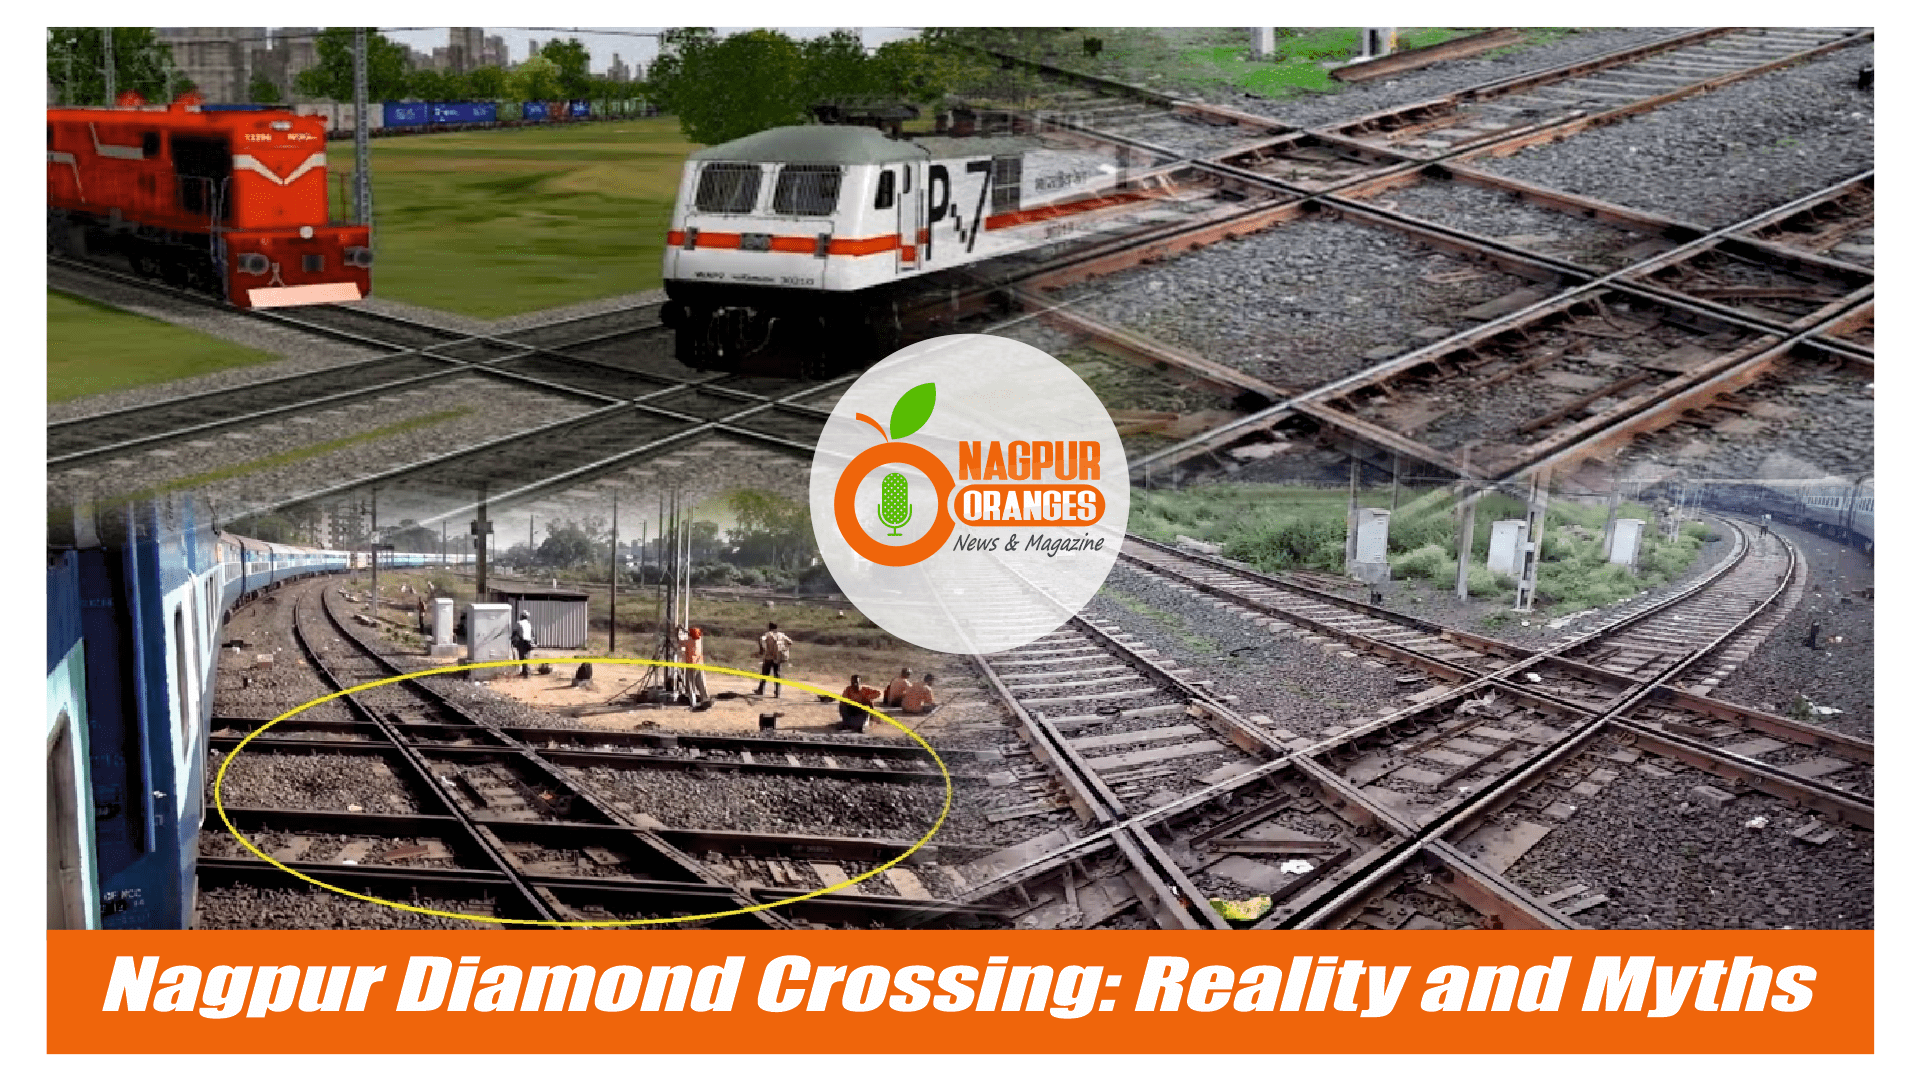 Nagpur Diamond Crossing